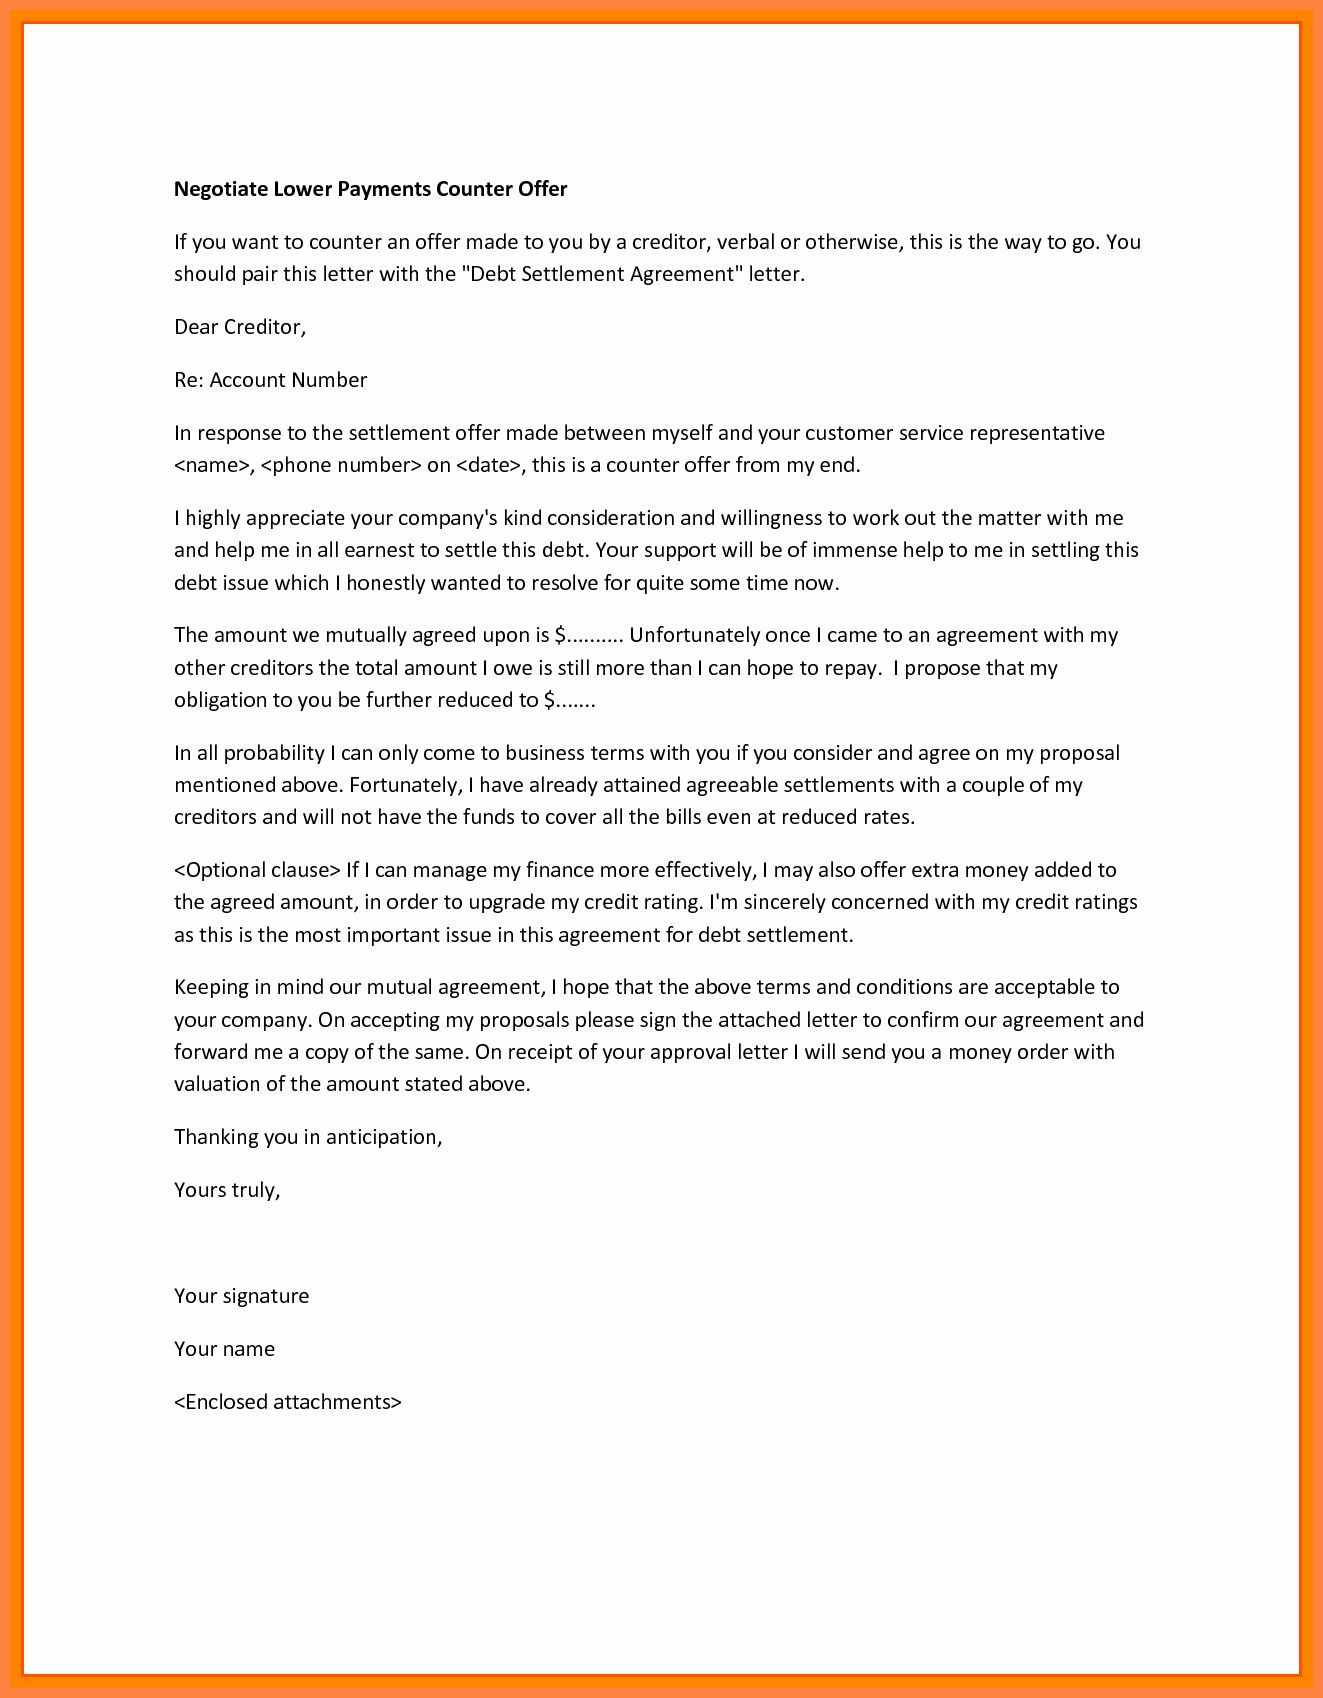 Counter Offer Letter Template New 3 Example Of Counter Offer Letter Salary Letter Templates Lettering Letter Writing Template